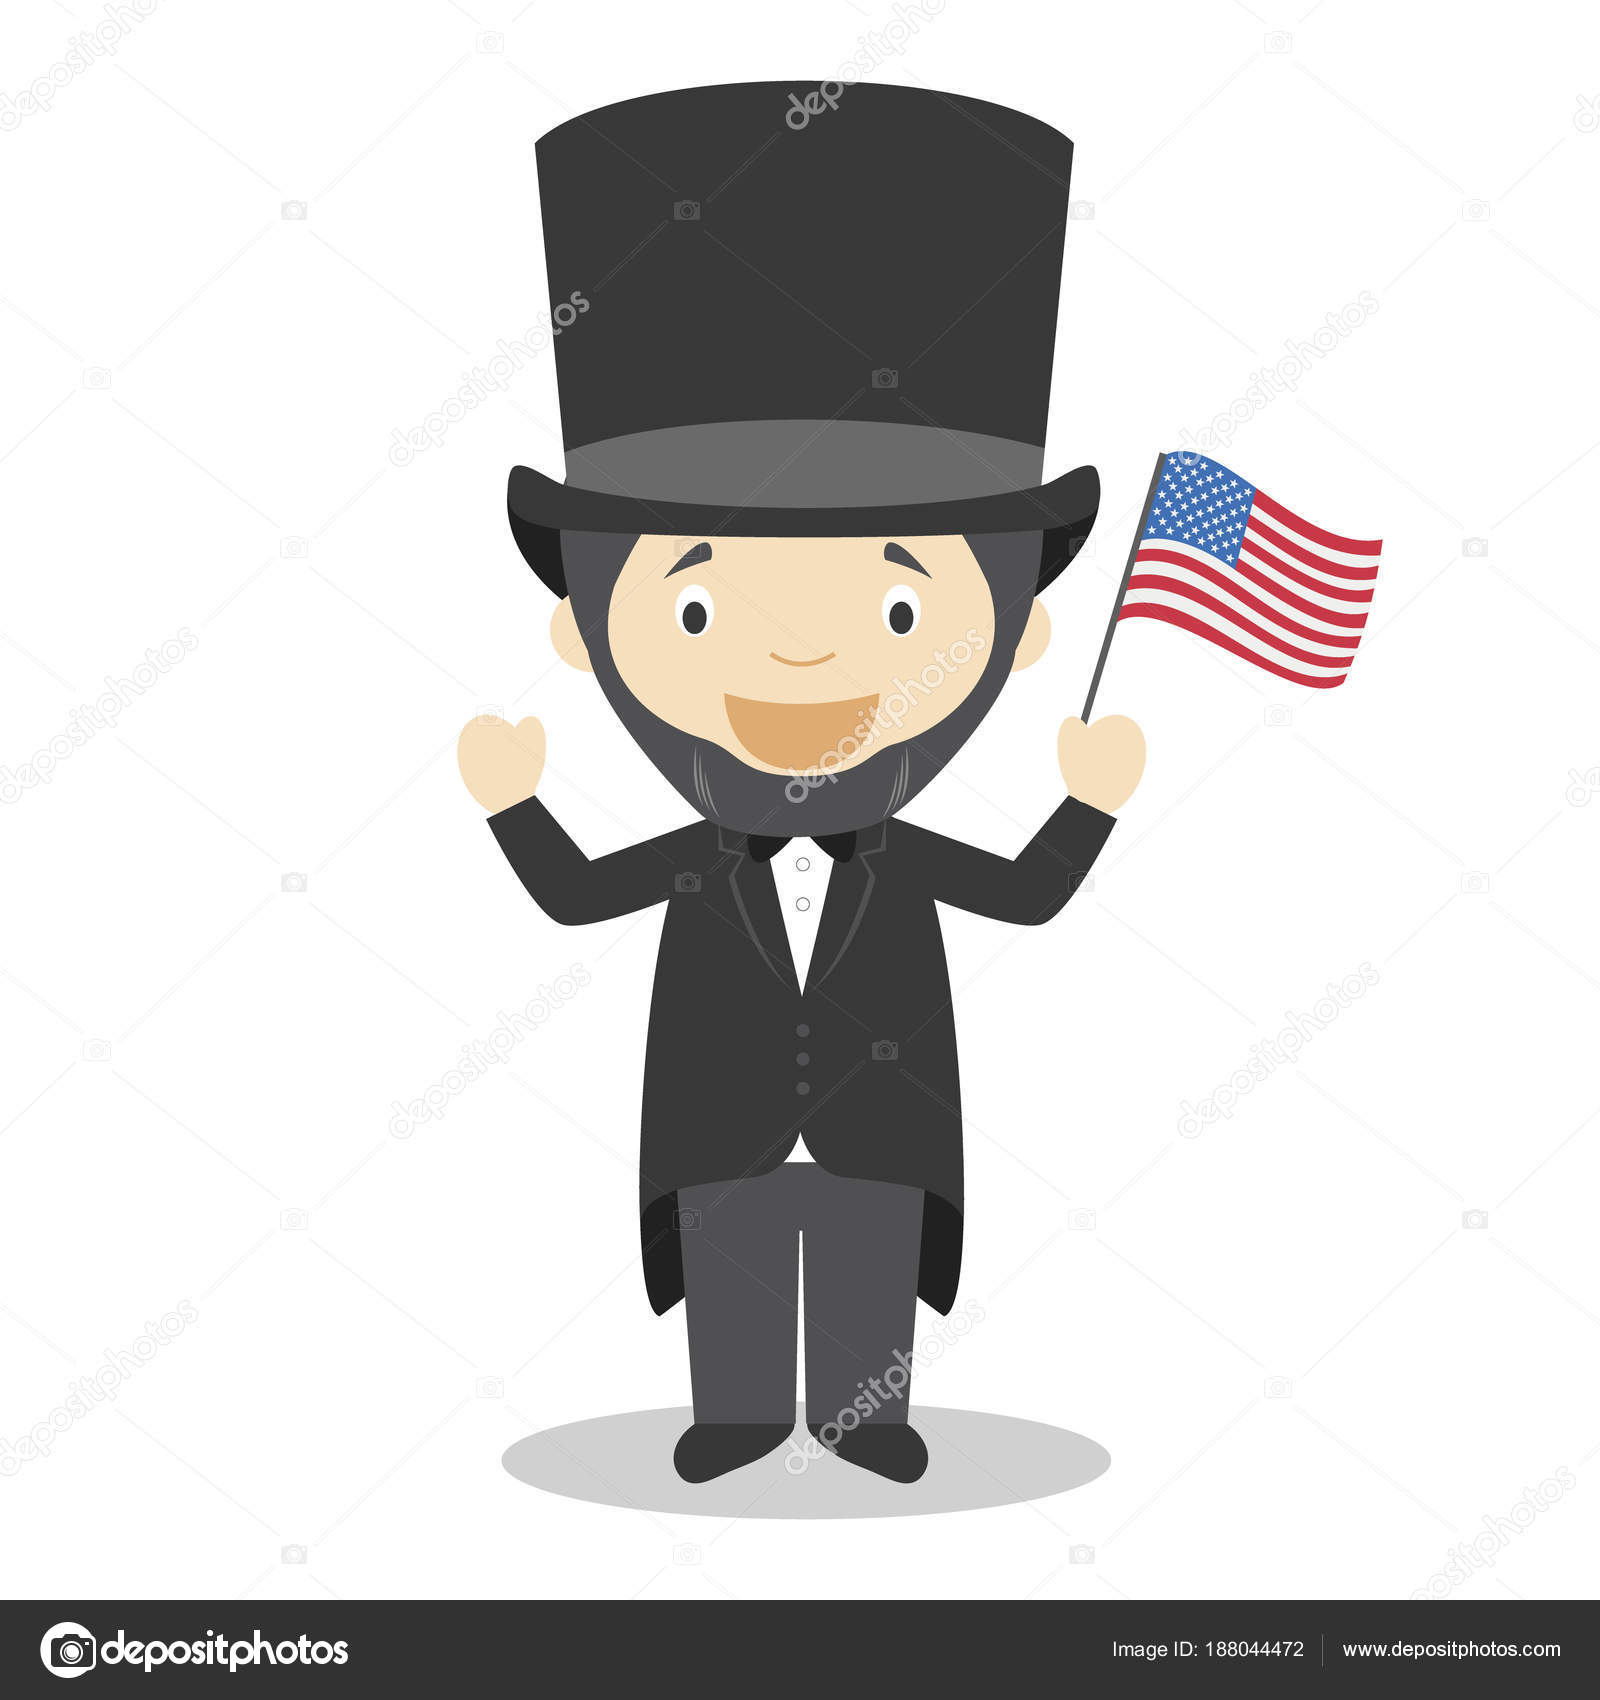 Abraham Lincoln Cartoon Character Vector Illustration Kids History